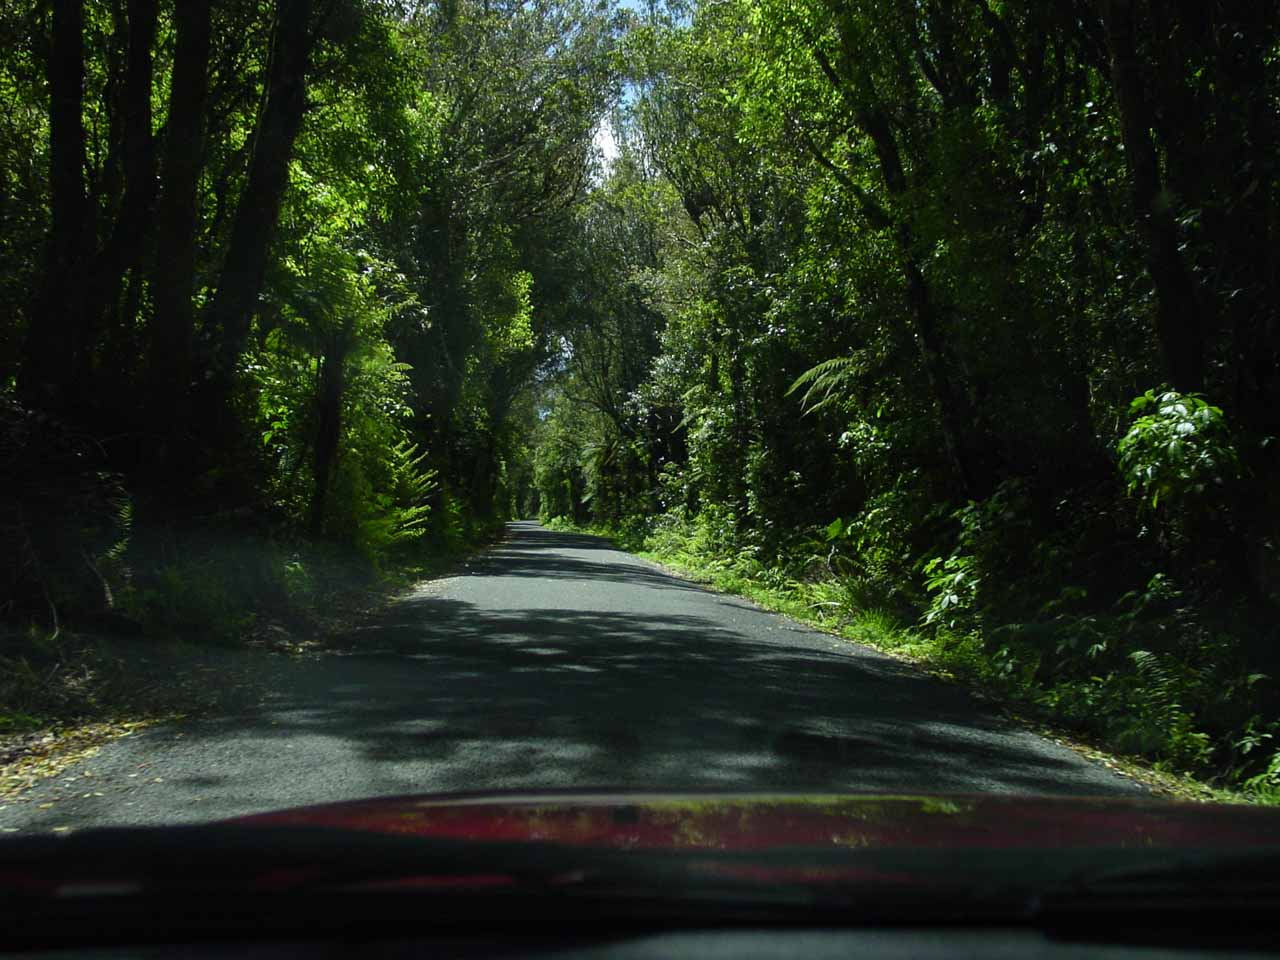 This was the narrow Manaia Rd as we made our way up to the Dawson Falls Visitor Centre